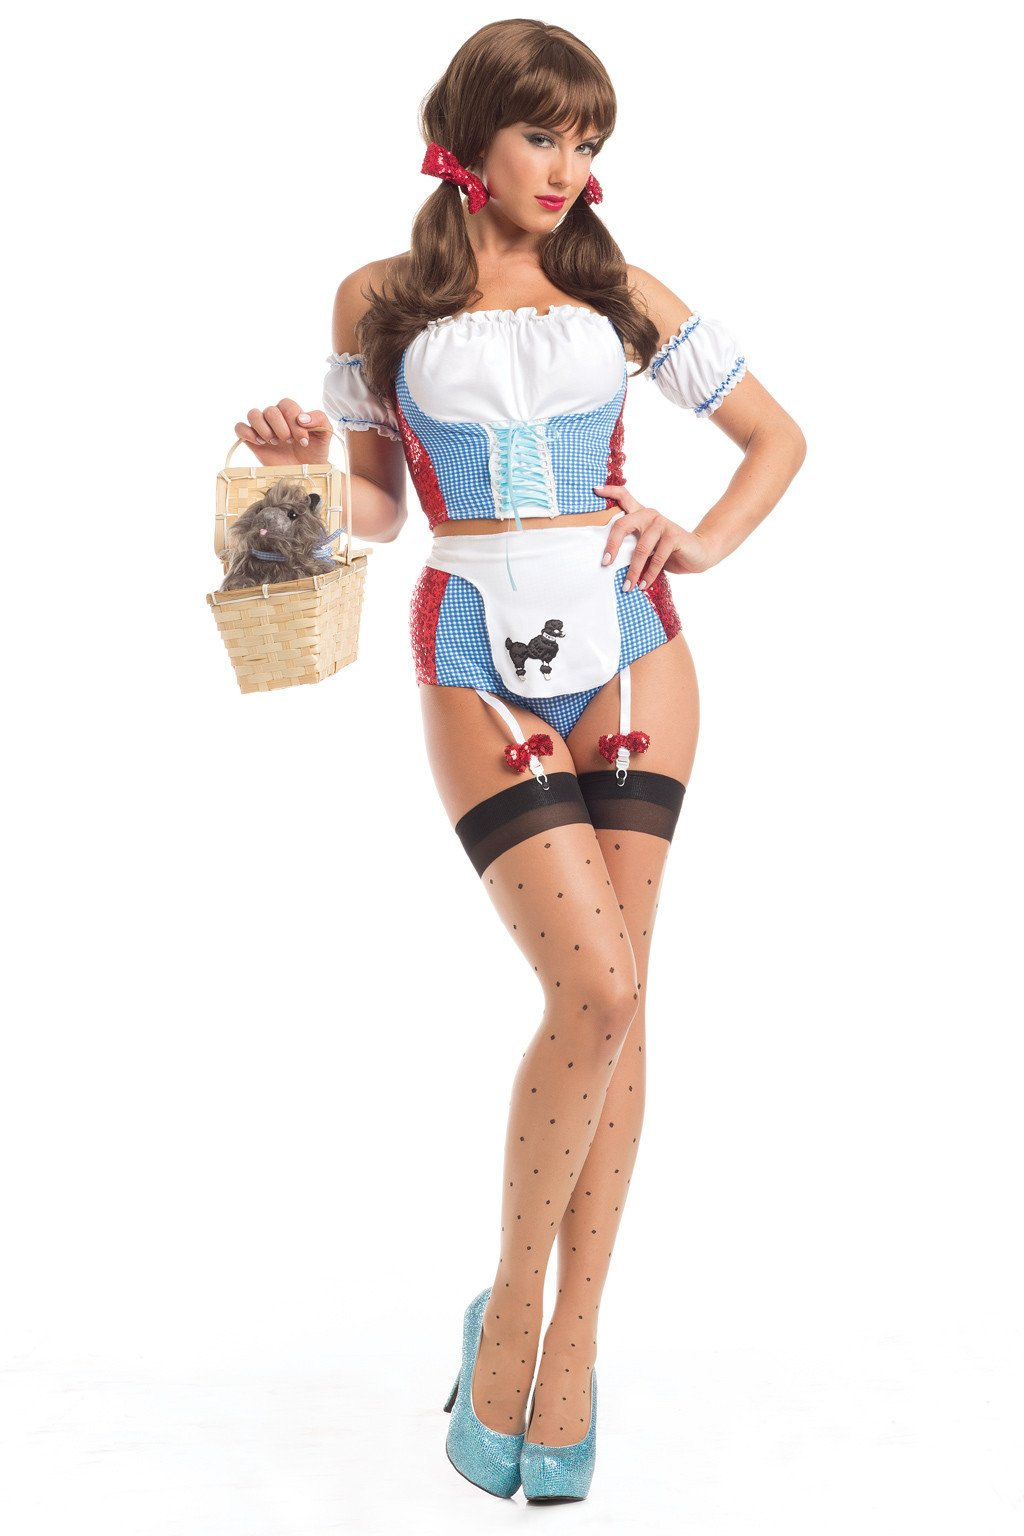 LALA TRENDS Be Wicked Desirable Dottie Costumes $49.95